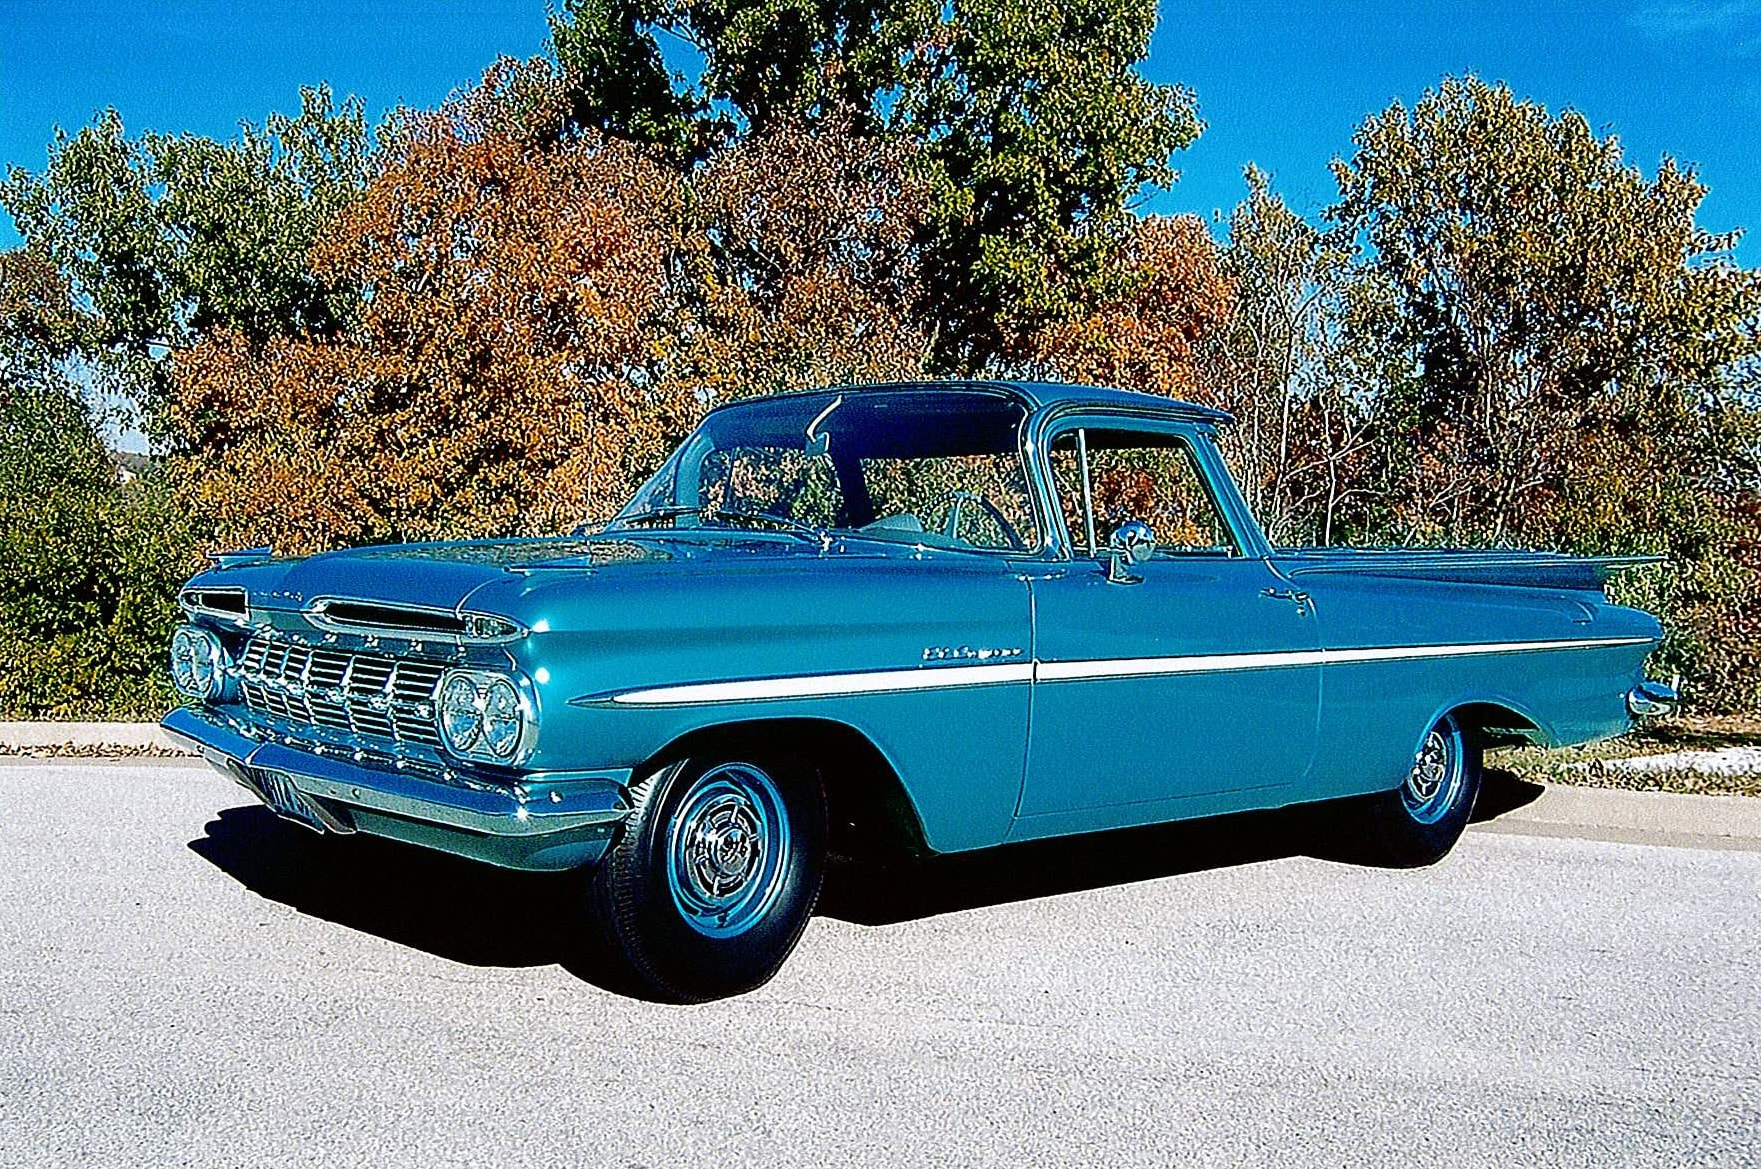 1959 Chevrolet El Camino Widescreen